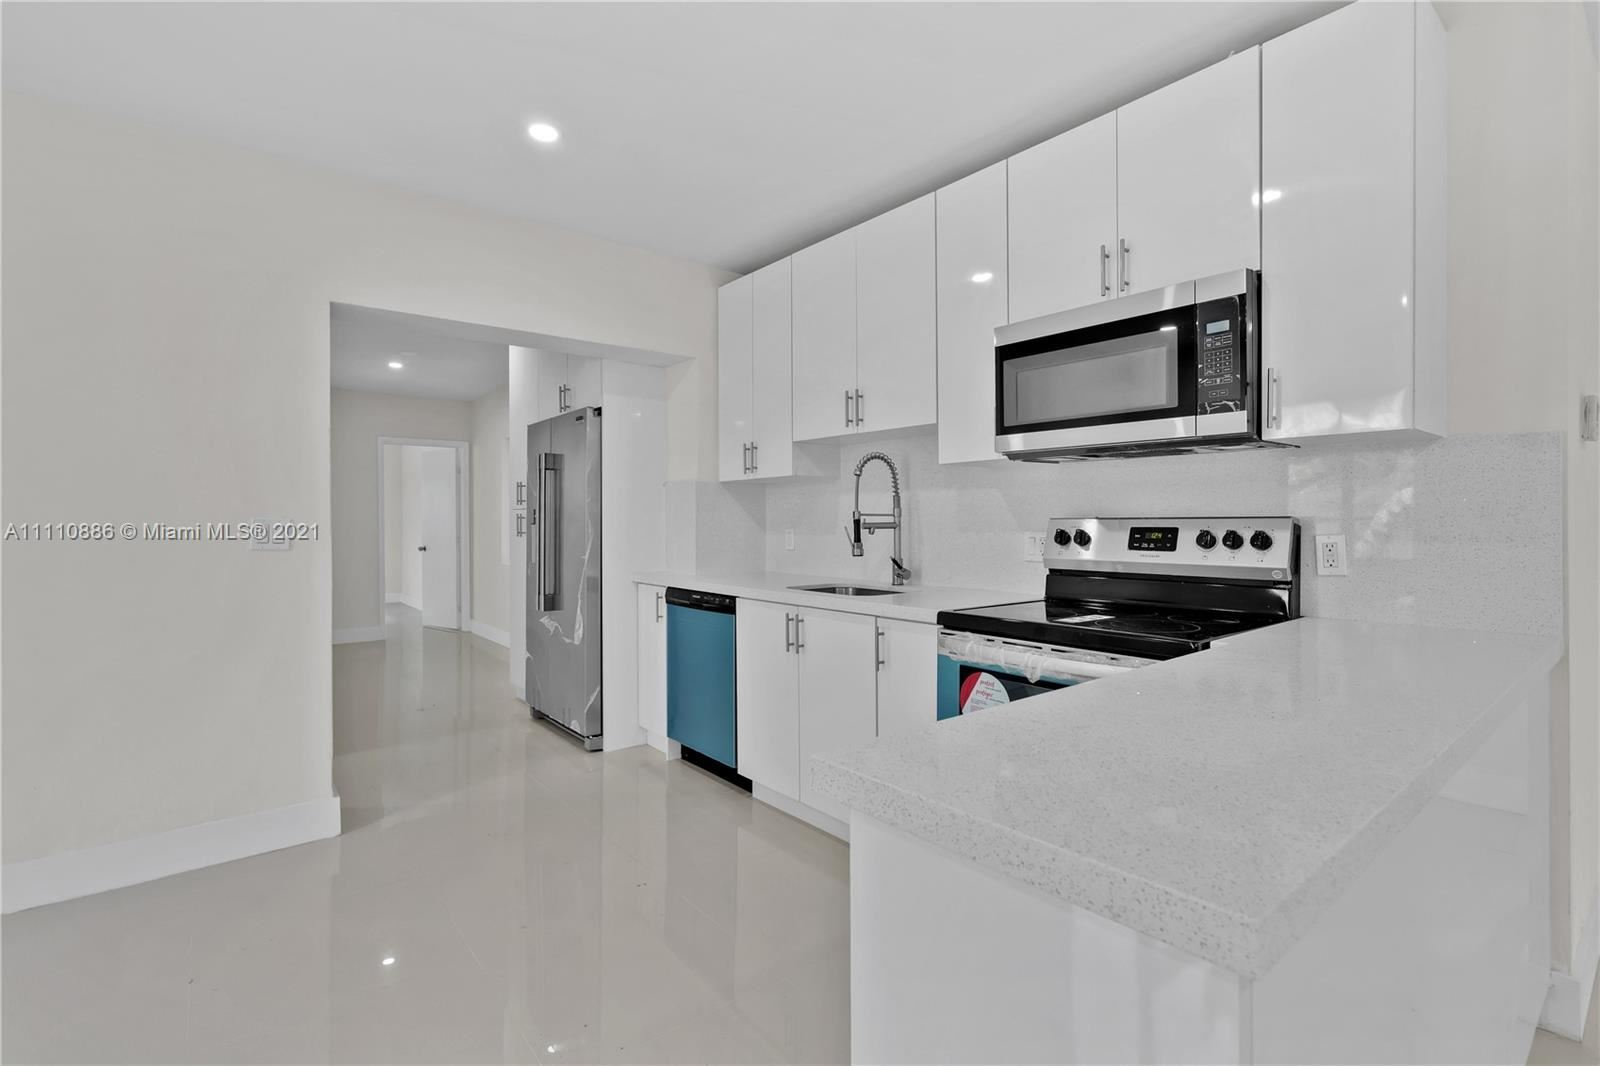 Photo of 1424 NE 1st Ave, Fort Lauderdale, FL 33304 (MLS # A11110886)